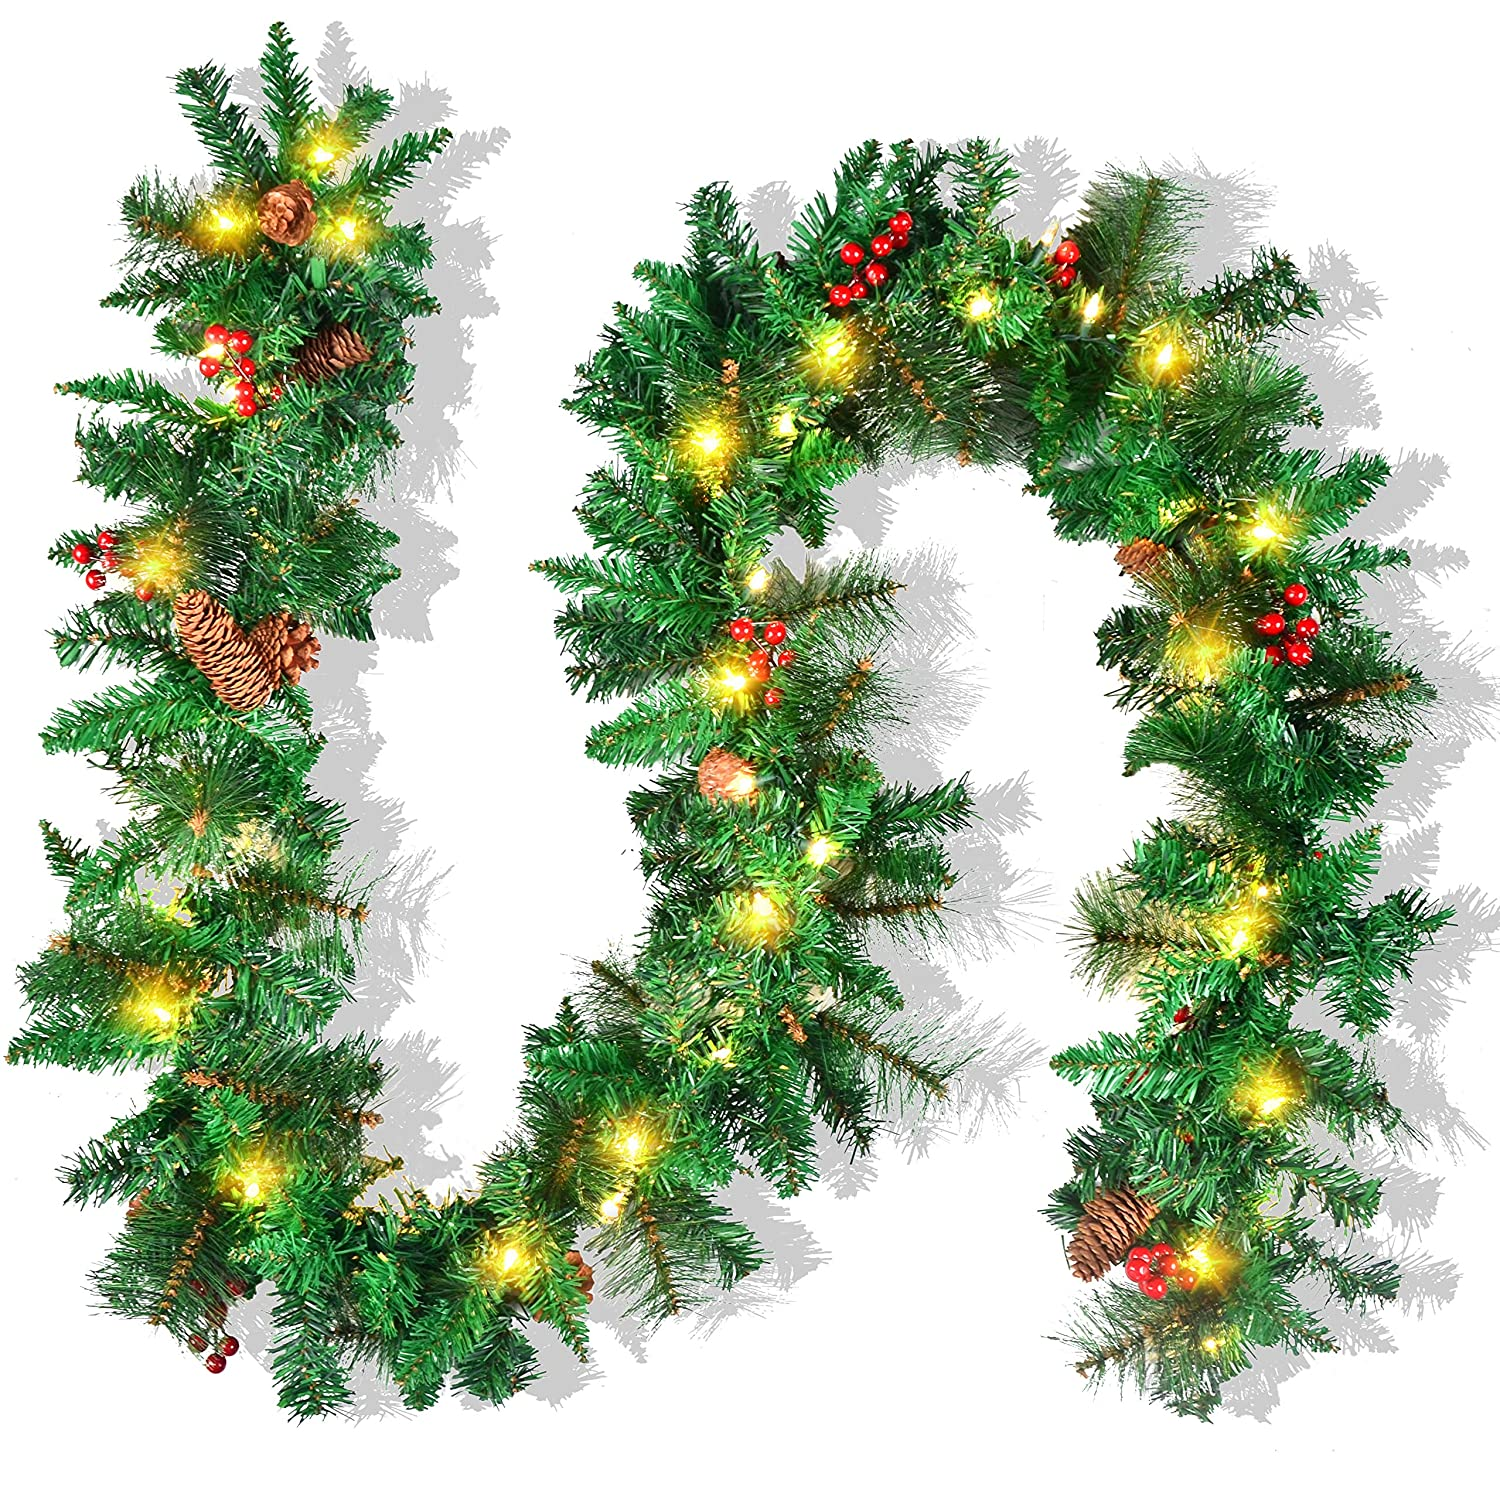 Joyin Premium 9 Foot By 10 Inch Artificial Christmas Garland Prelit With 50 Lights And Silver Bristle Pine Cones Red Berries